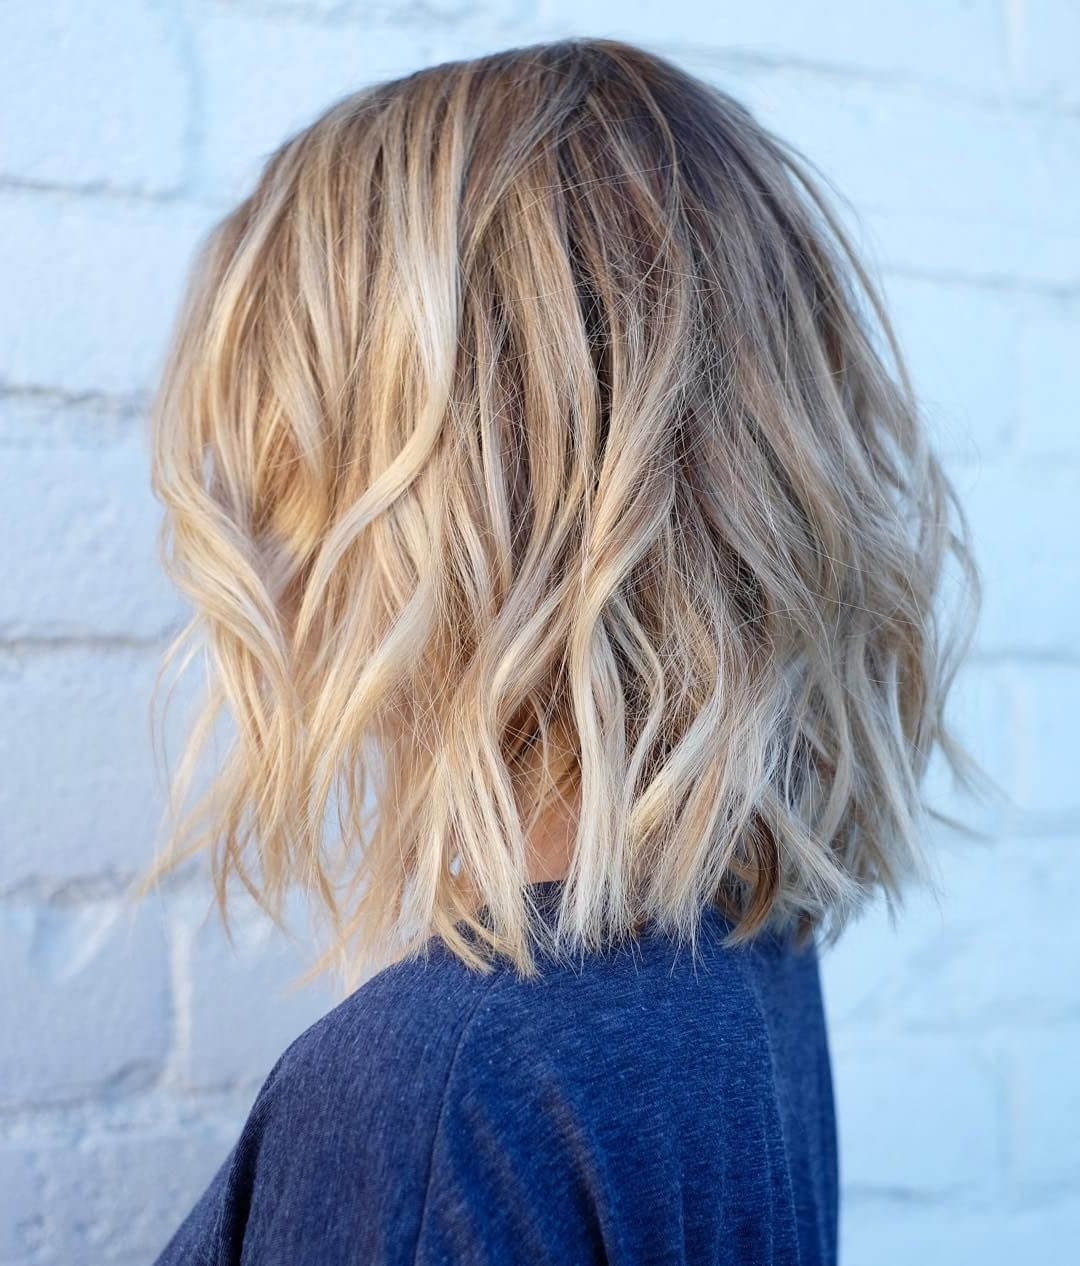 50 Fresh Short Blonde Hair Ideas To Update Your Style In 2018 Intended For Preferred Shaggy Chin Length Blonde Bob Hairstyles (View 7 of 20)